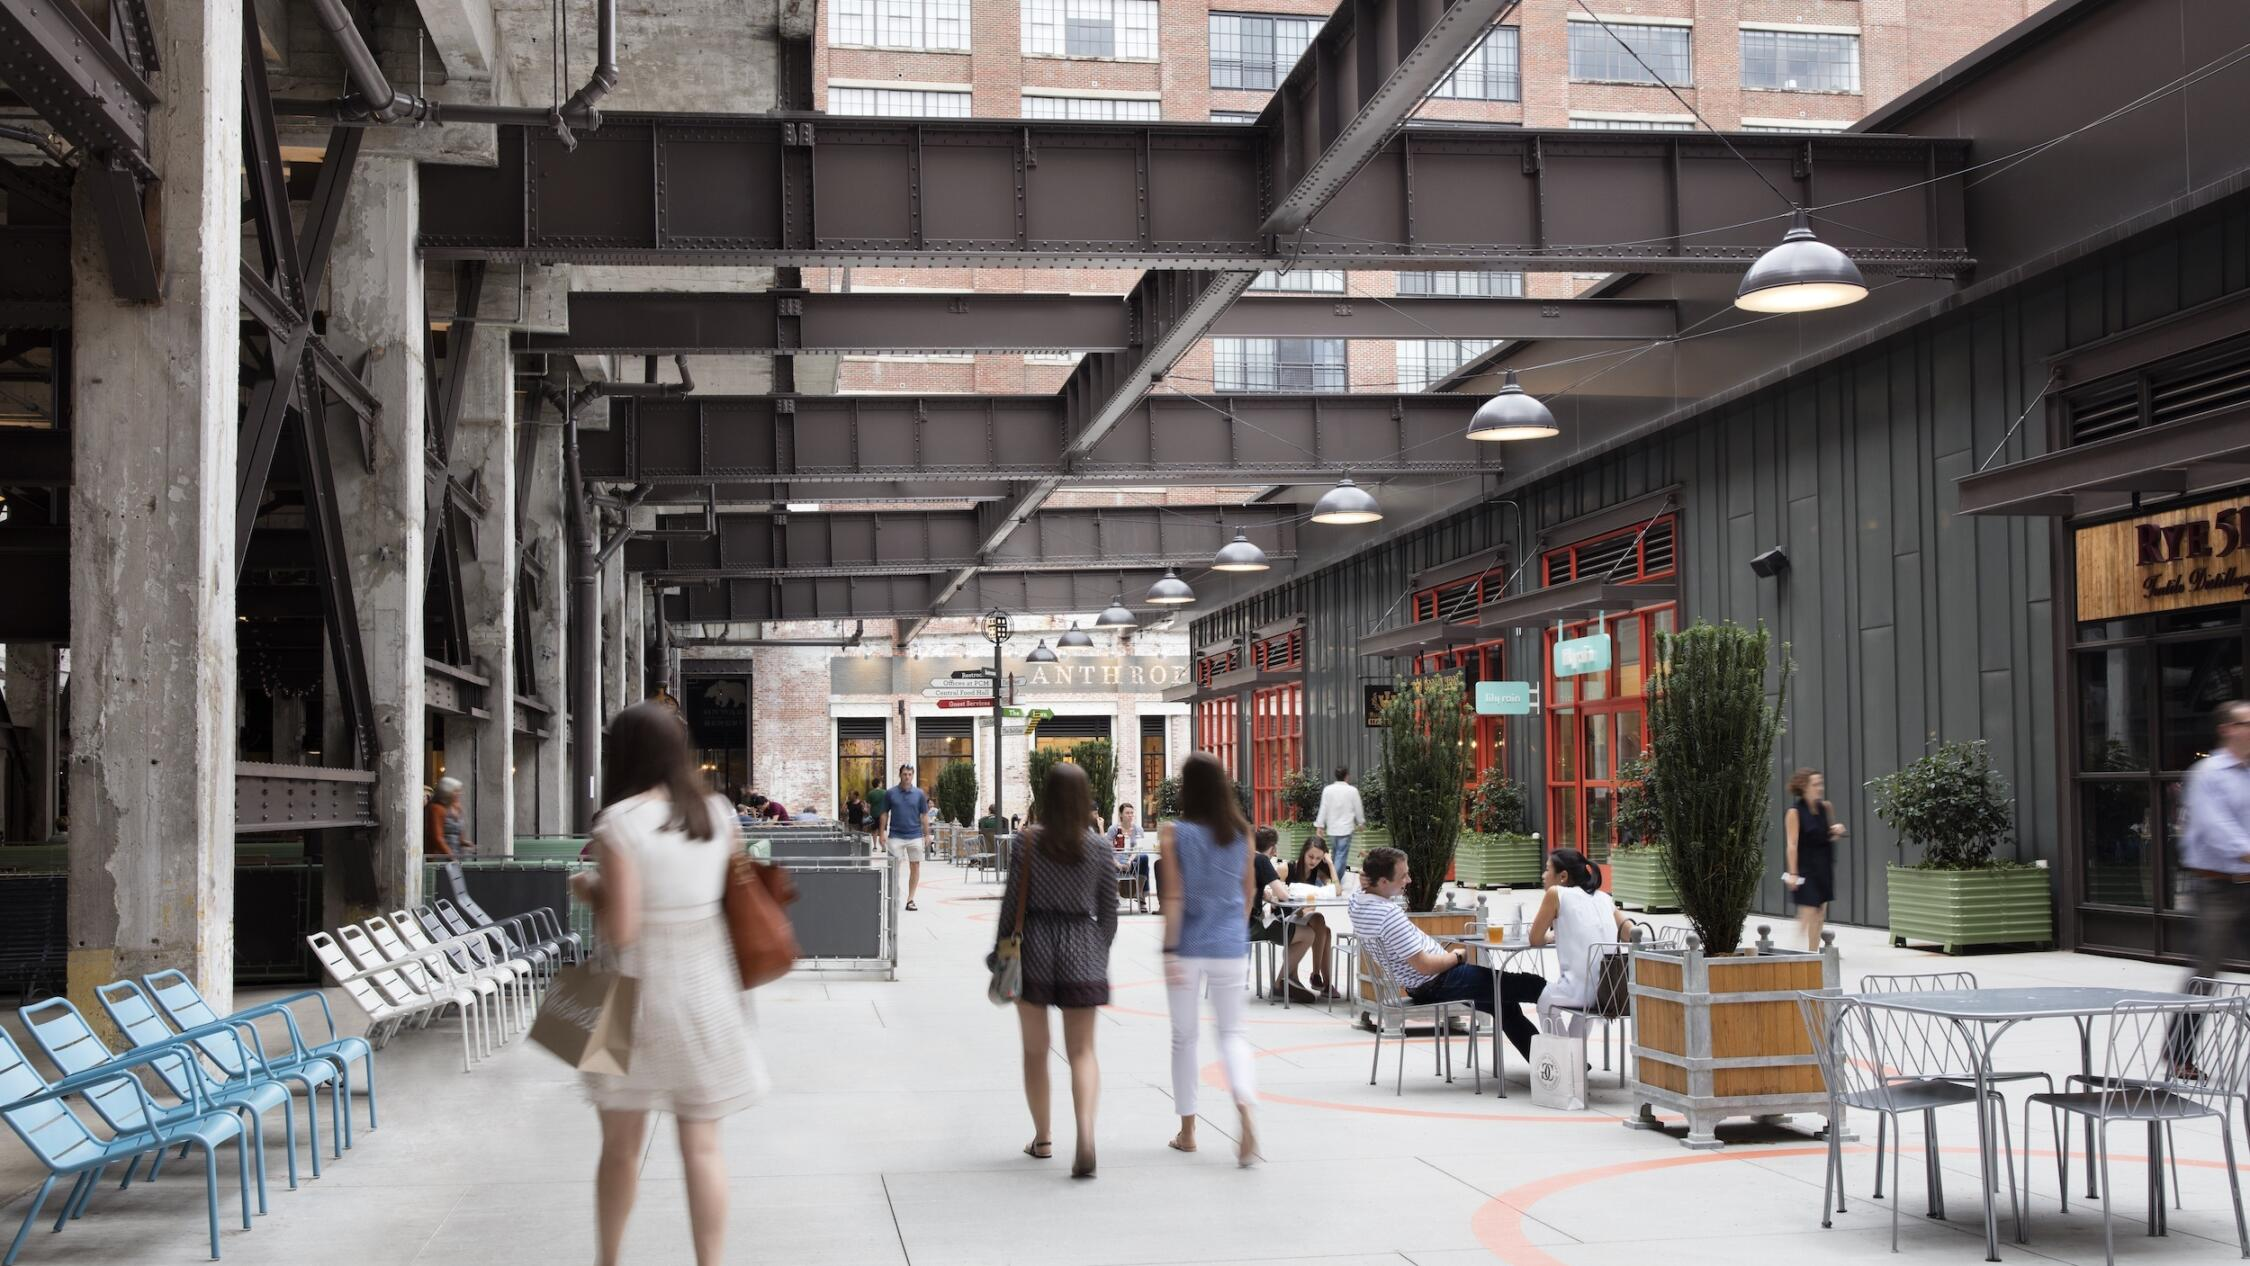 People walking through the courtyard of Ponce City Market